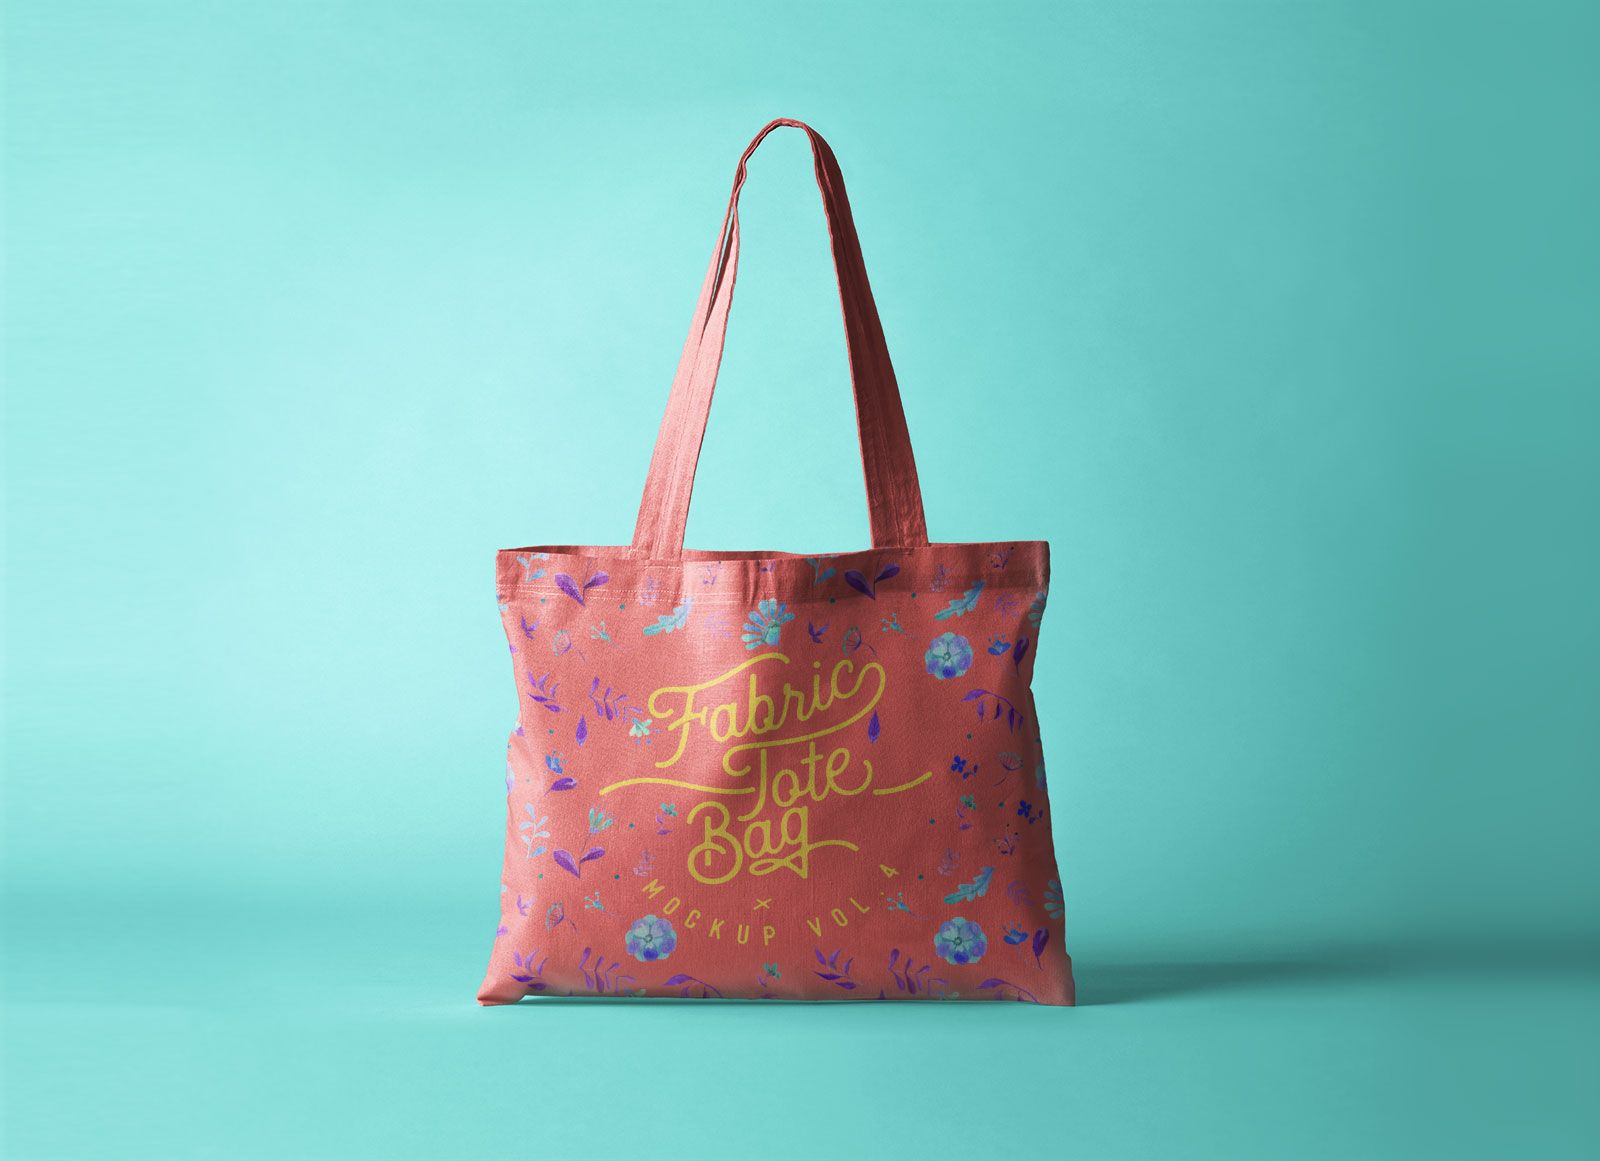 Download Free Fabric Tote Bag Mockup Psd Bag Mockup Fabric Tote Bags